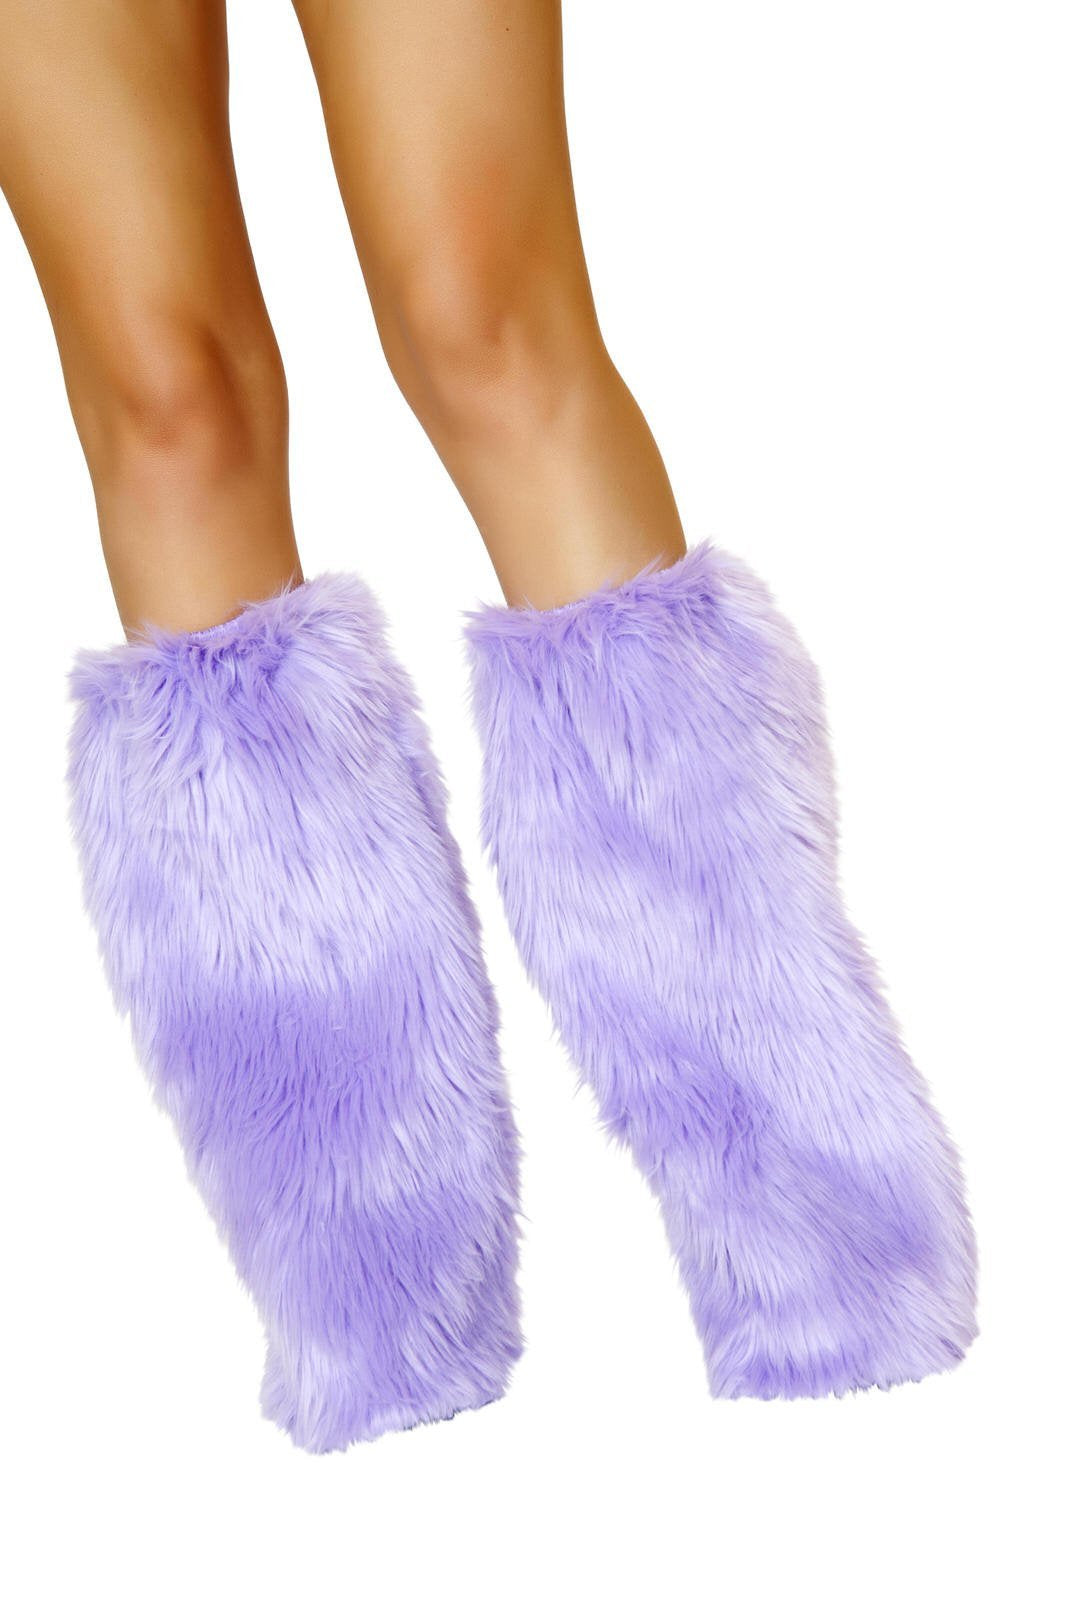 Fur Boot Covers costumes Color RedSize One SizeNakees